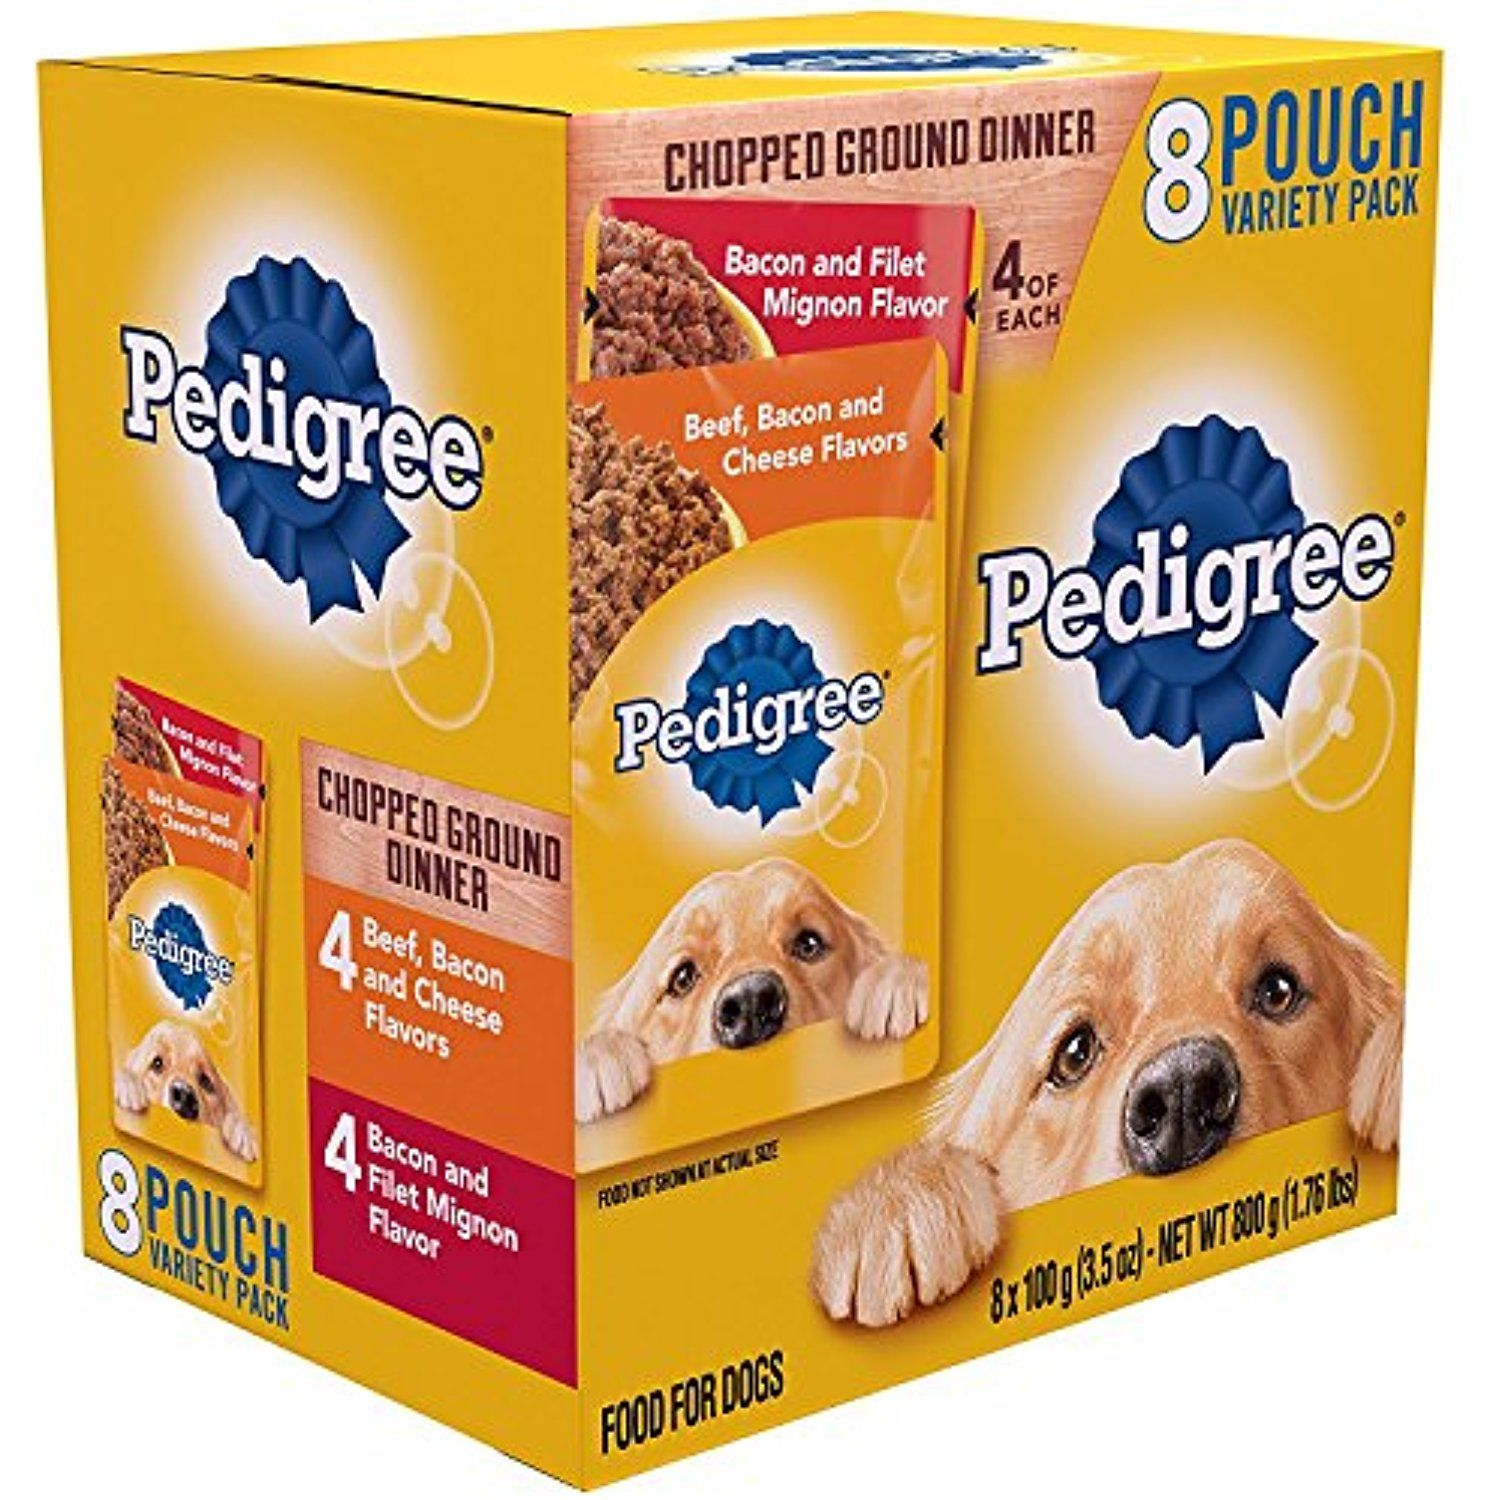 Pedigree Chopped Ground Dinner 8 Pouches Variety Pack 4 Bacon And